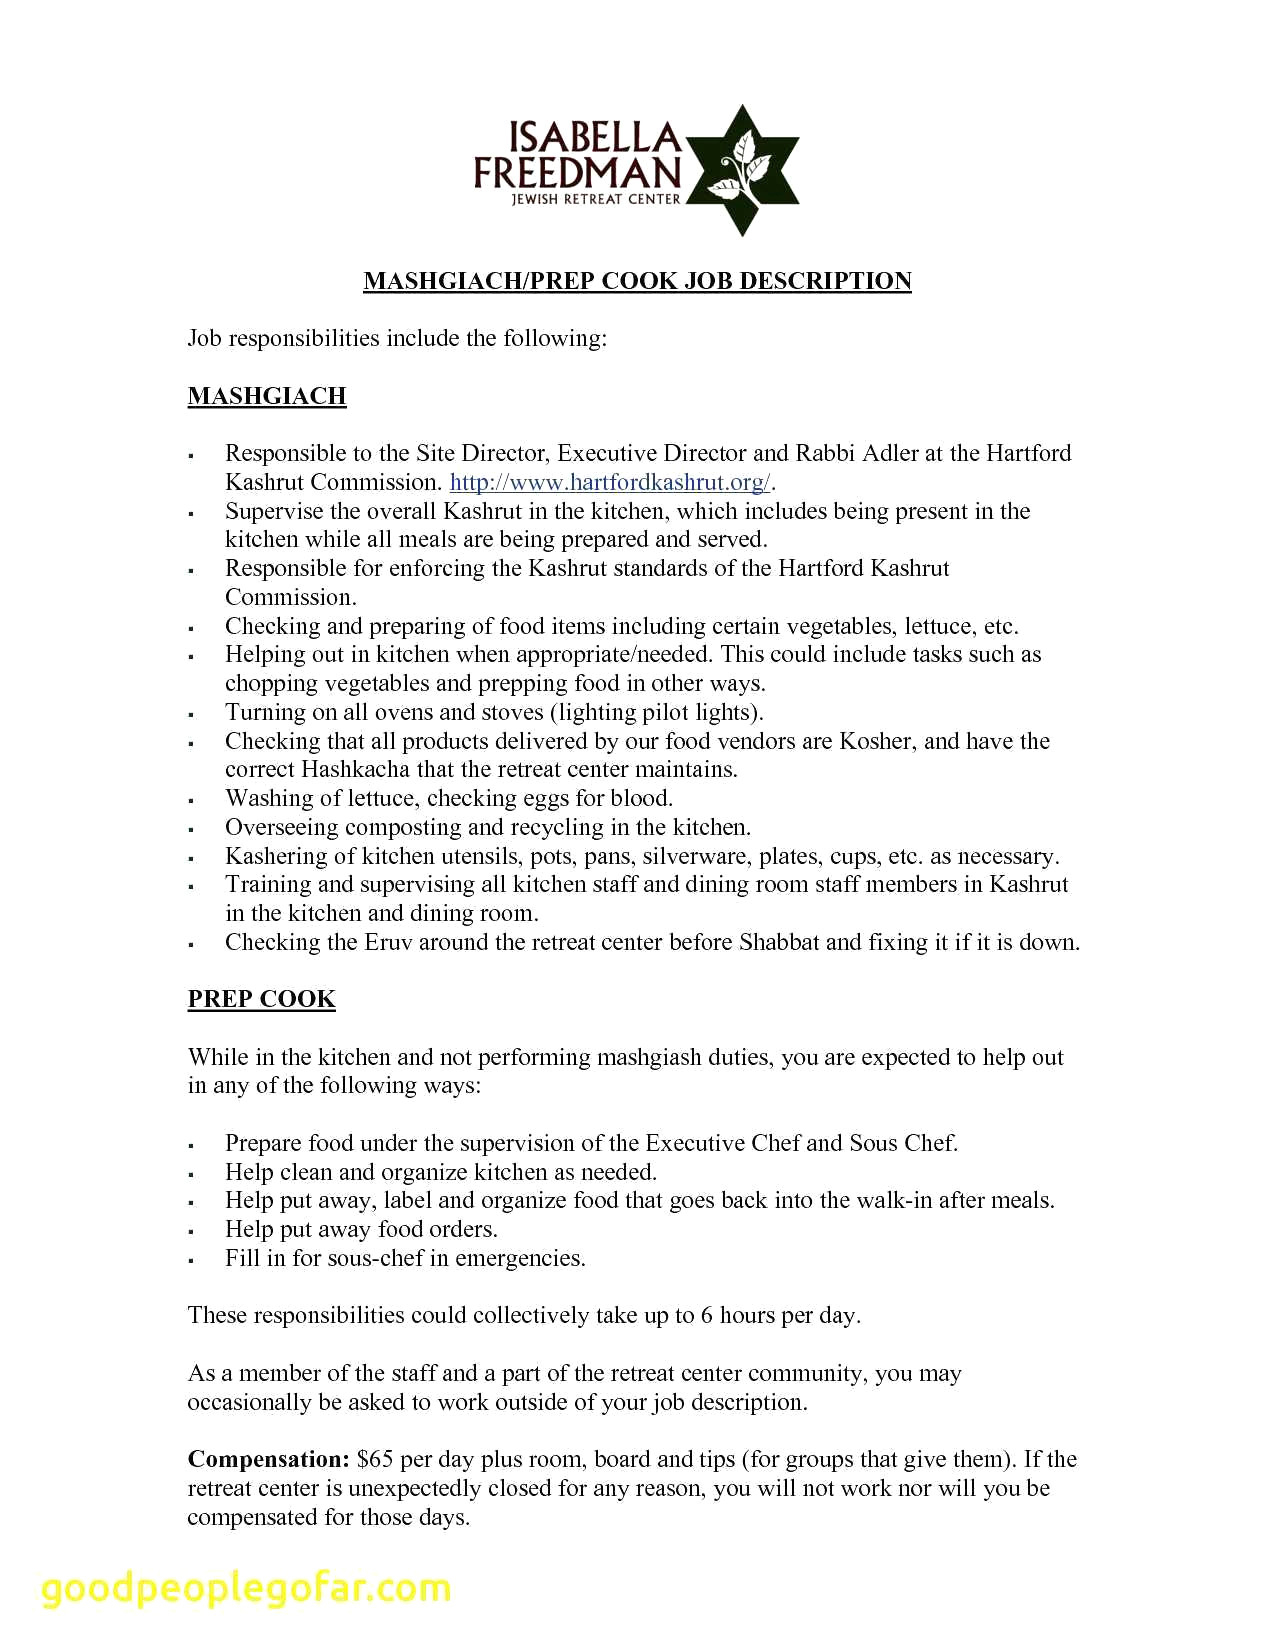 Sales Representative Job Description Resume - 37 Inspirational Sales Representative Resume